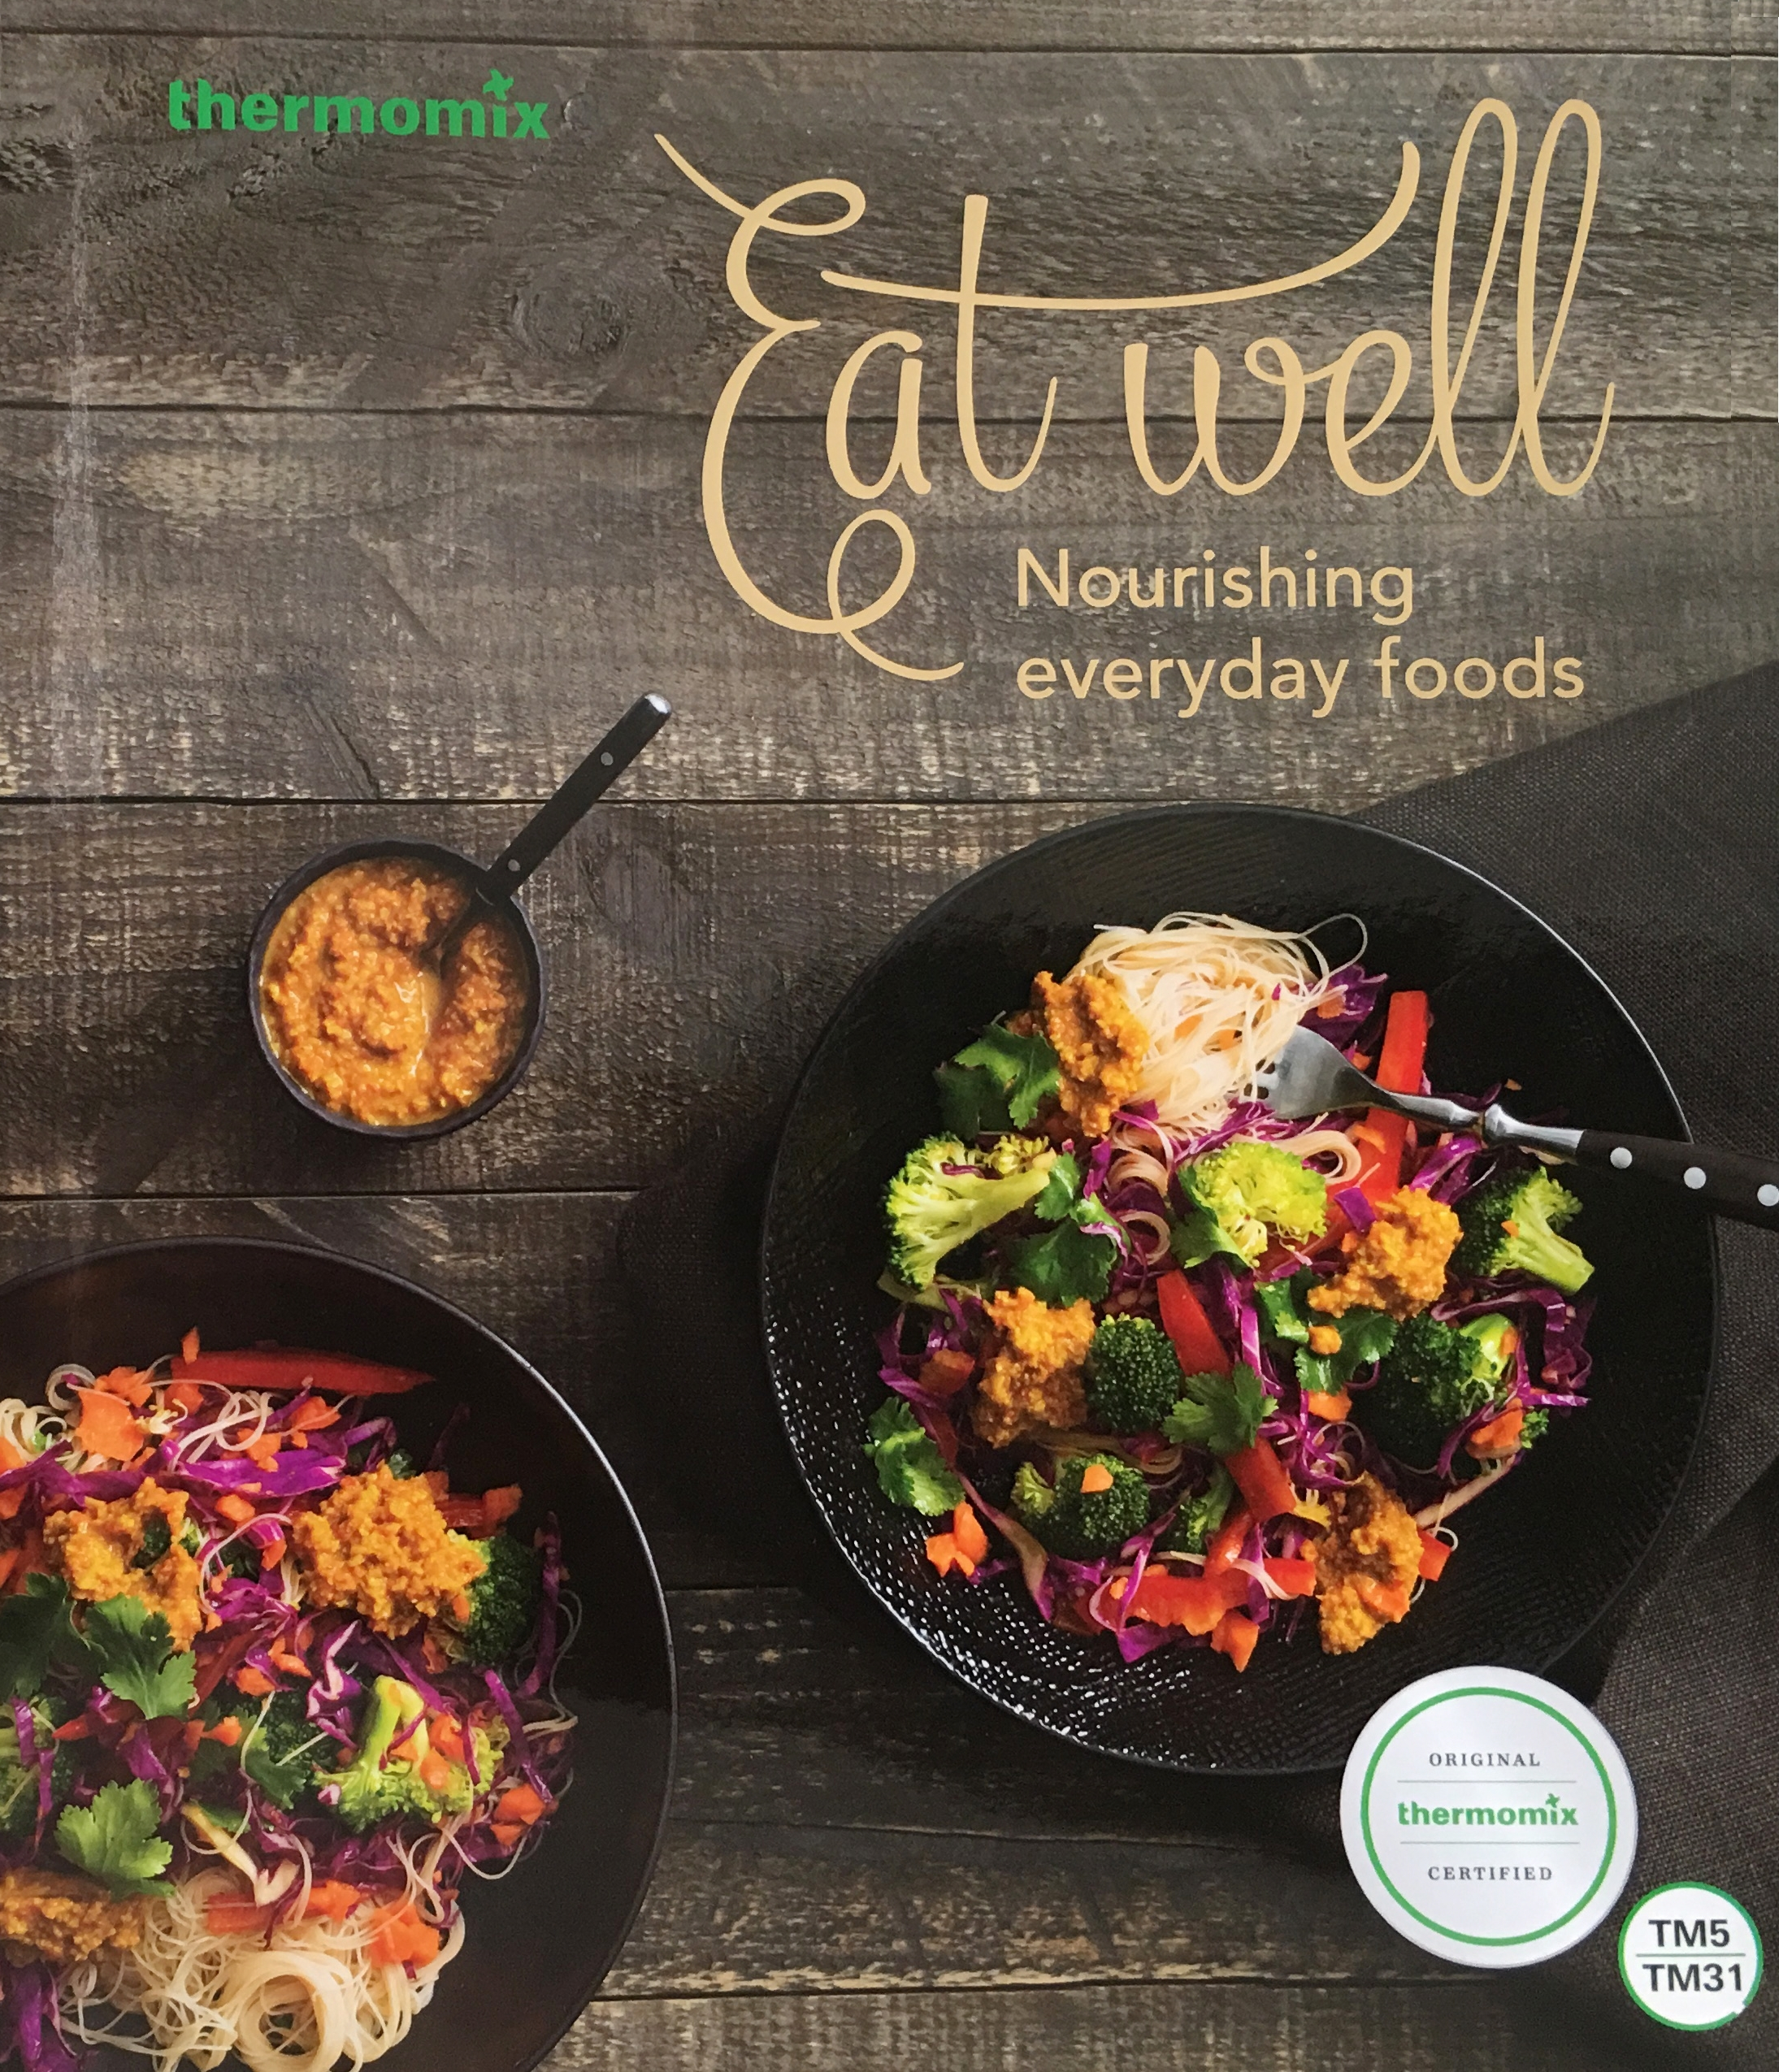 Eat Well: Nourishing Everyday Foods! Cookbook Now Available